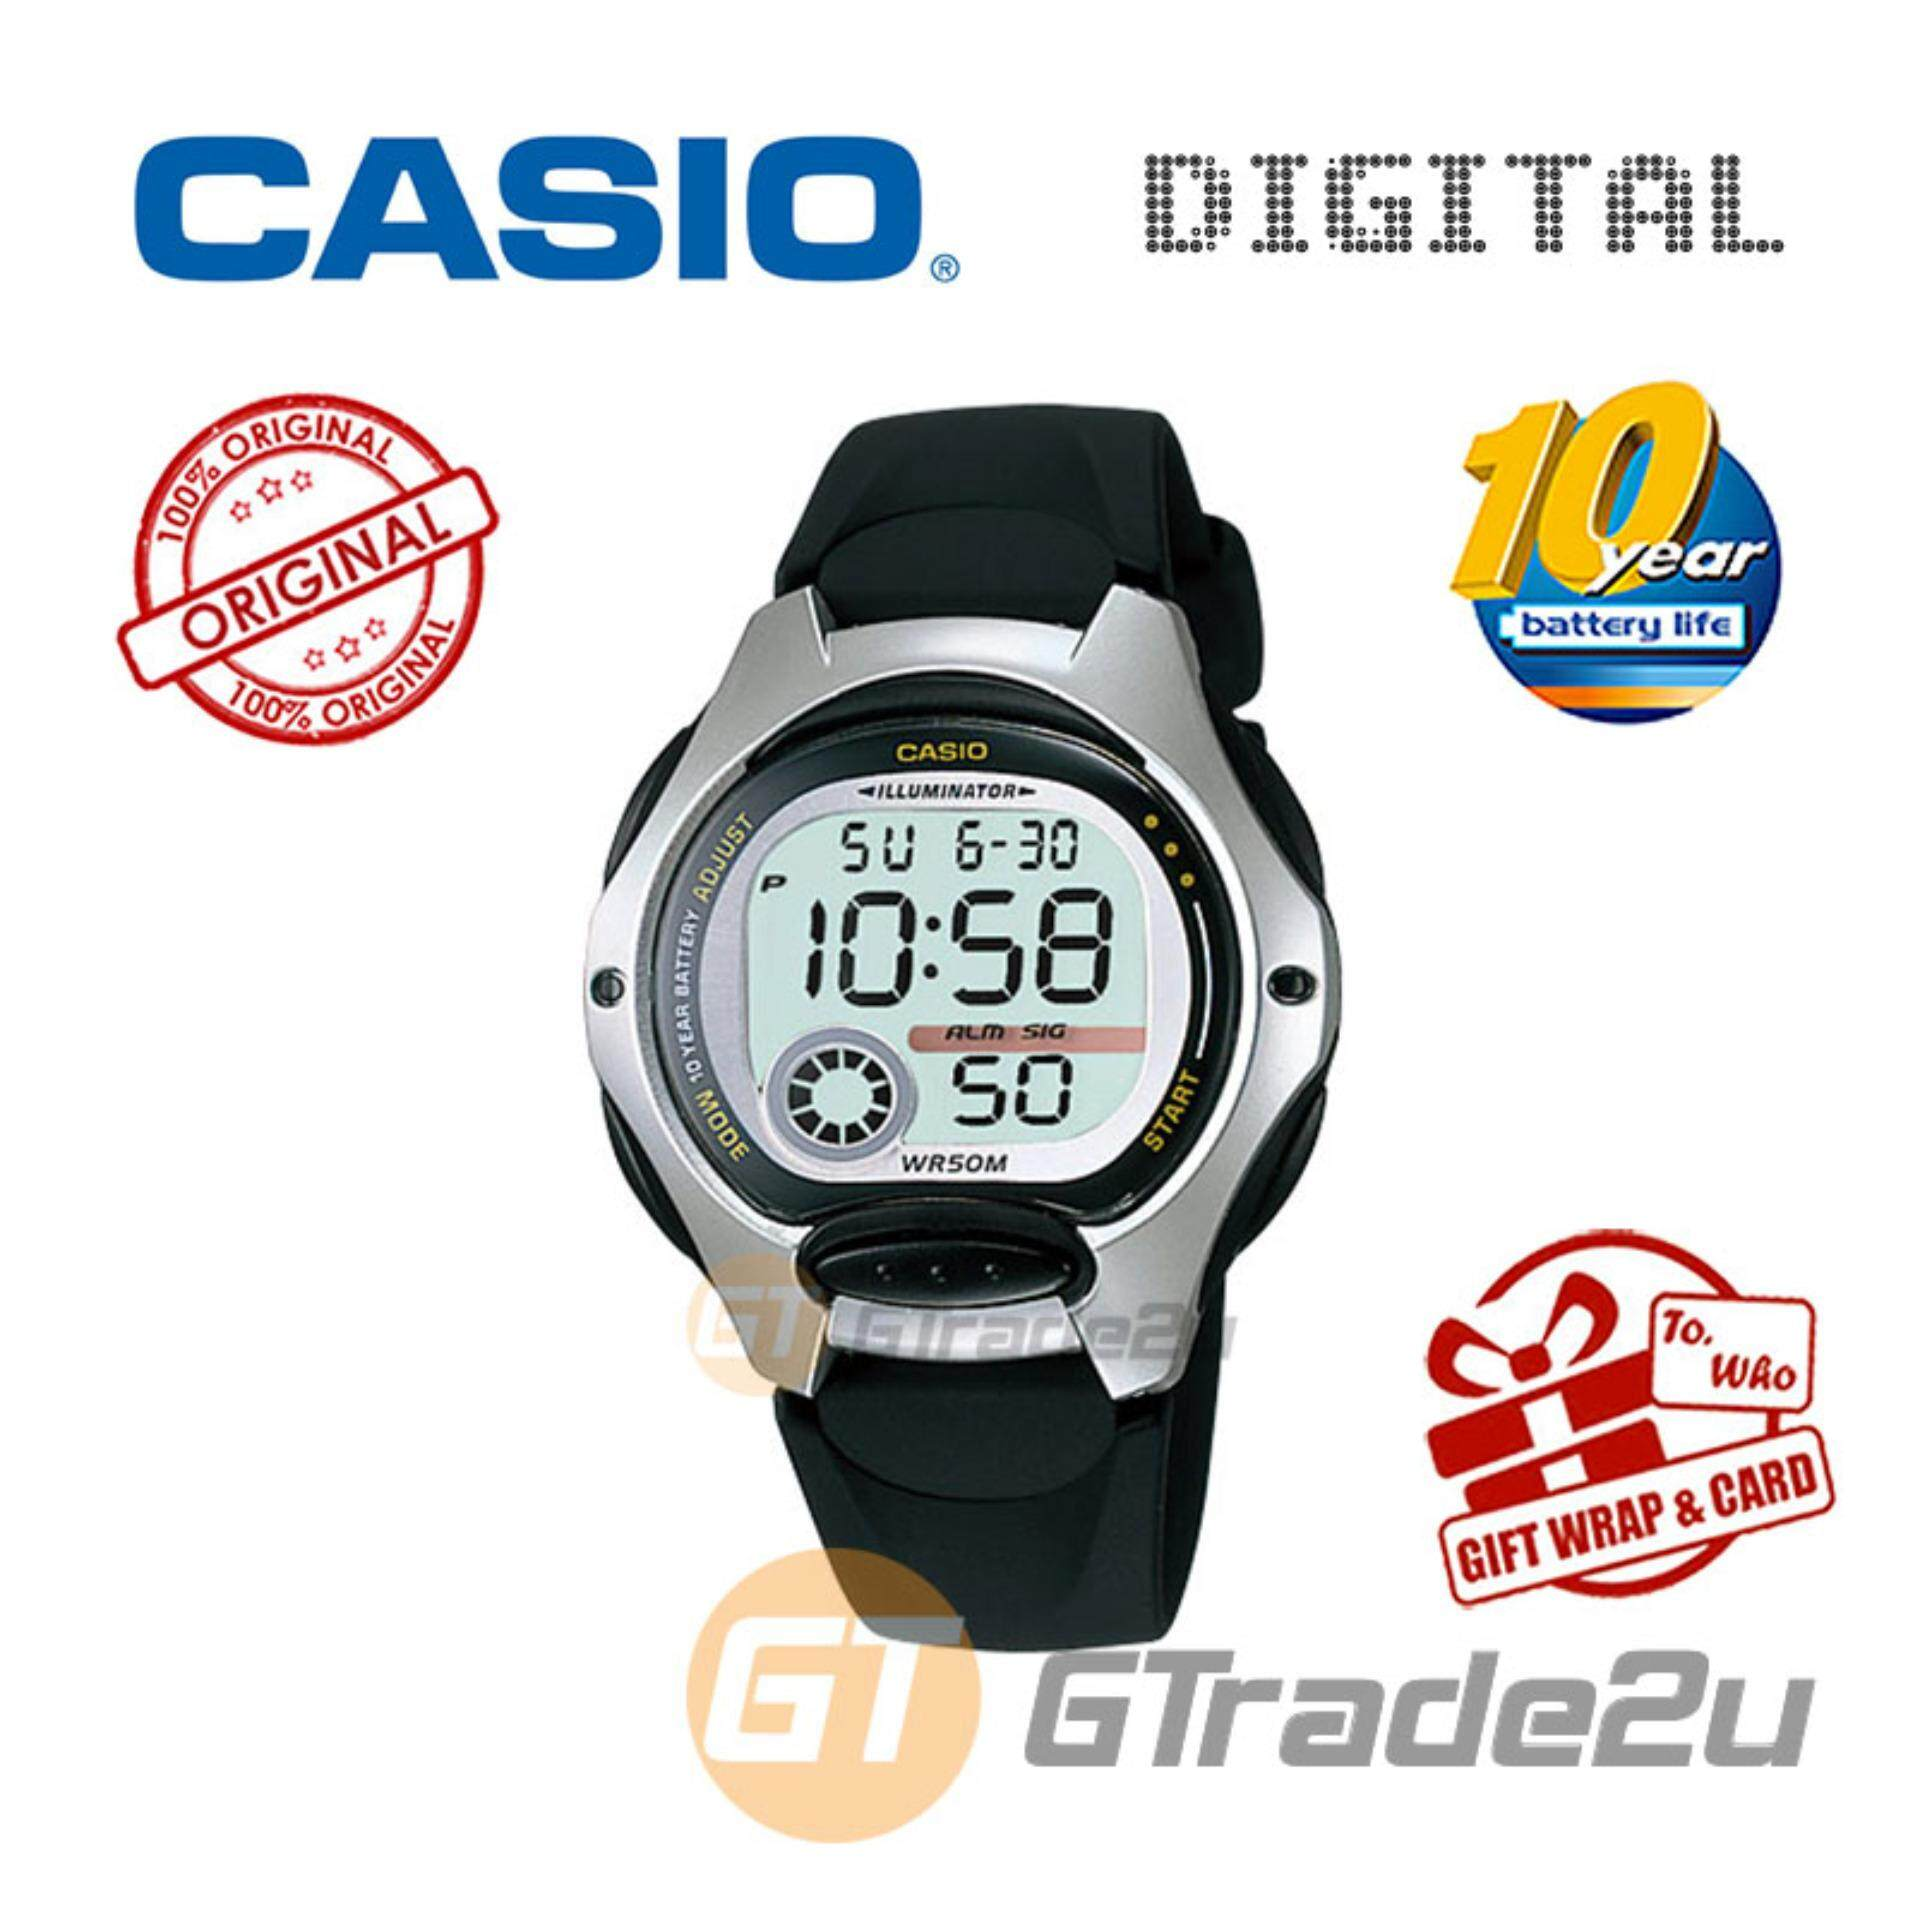 Casio Watches With Best Price at Lazada Malaysia 72577878f6